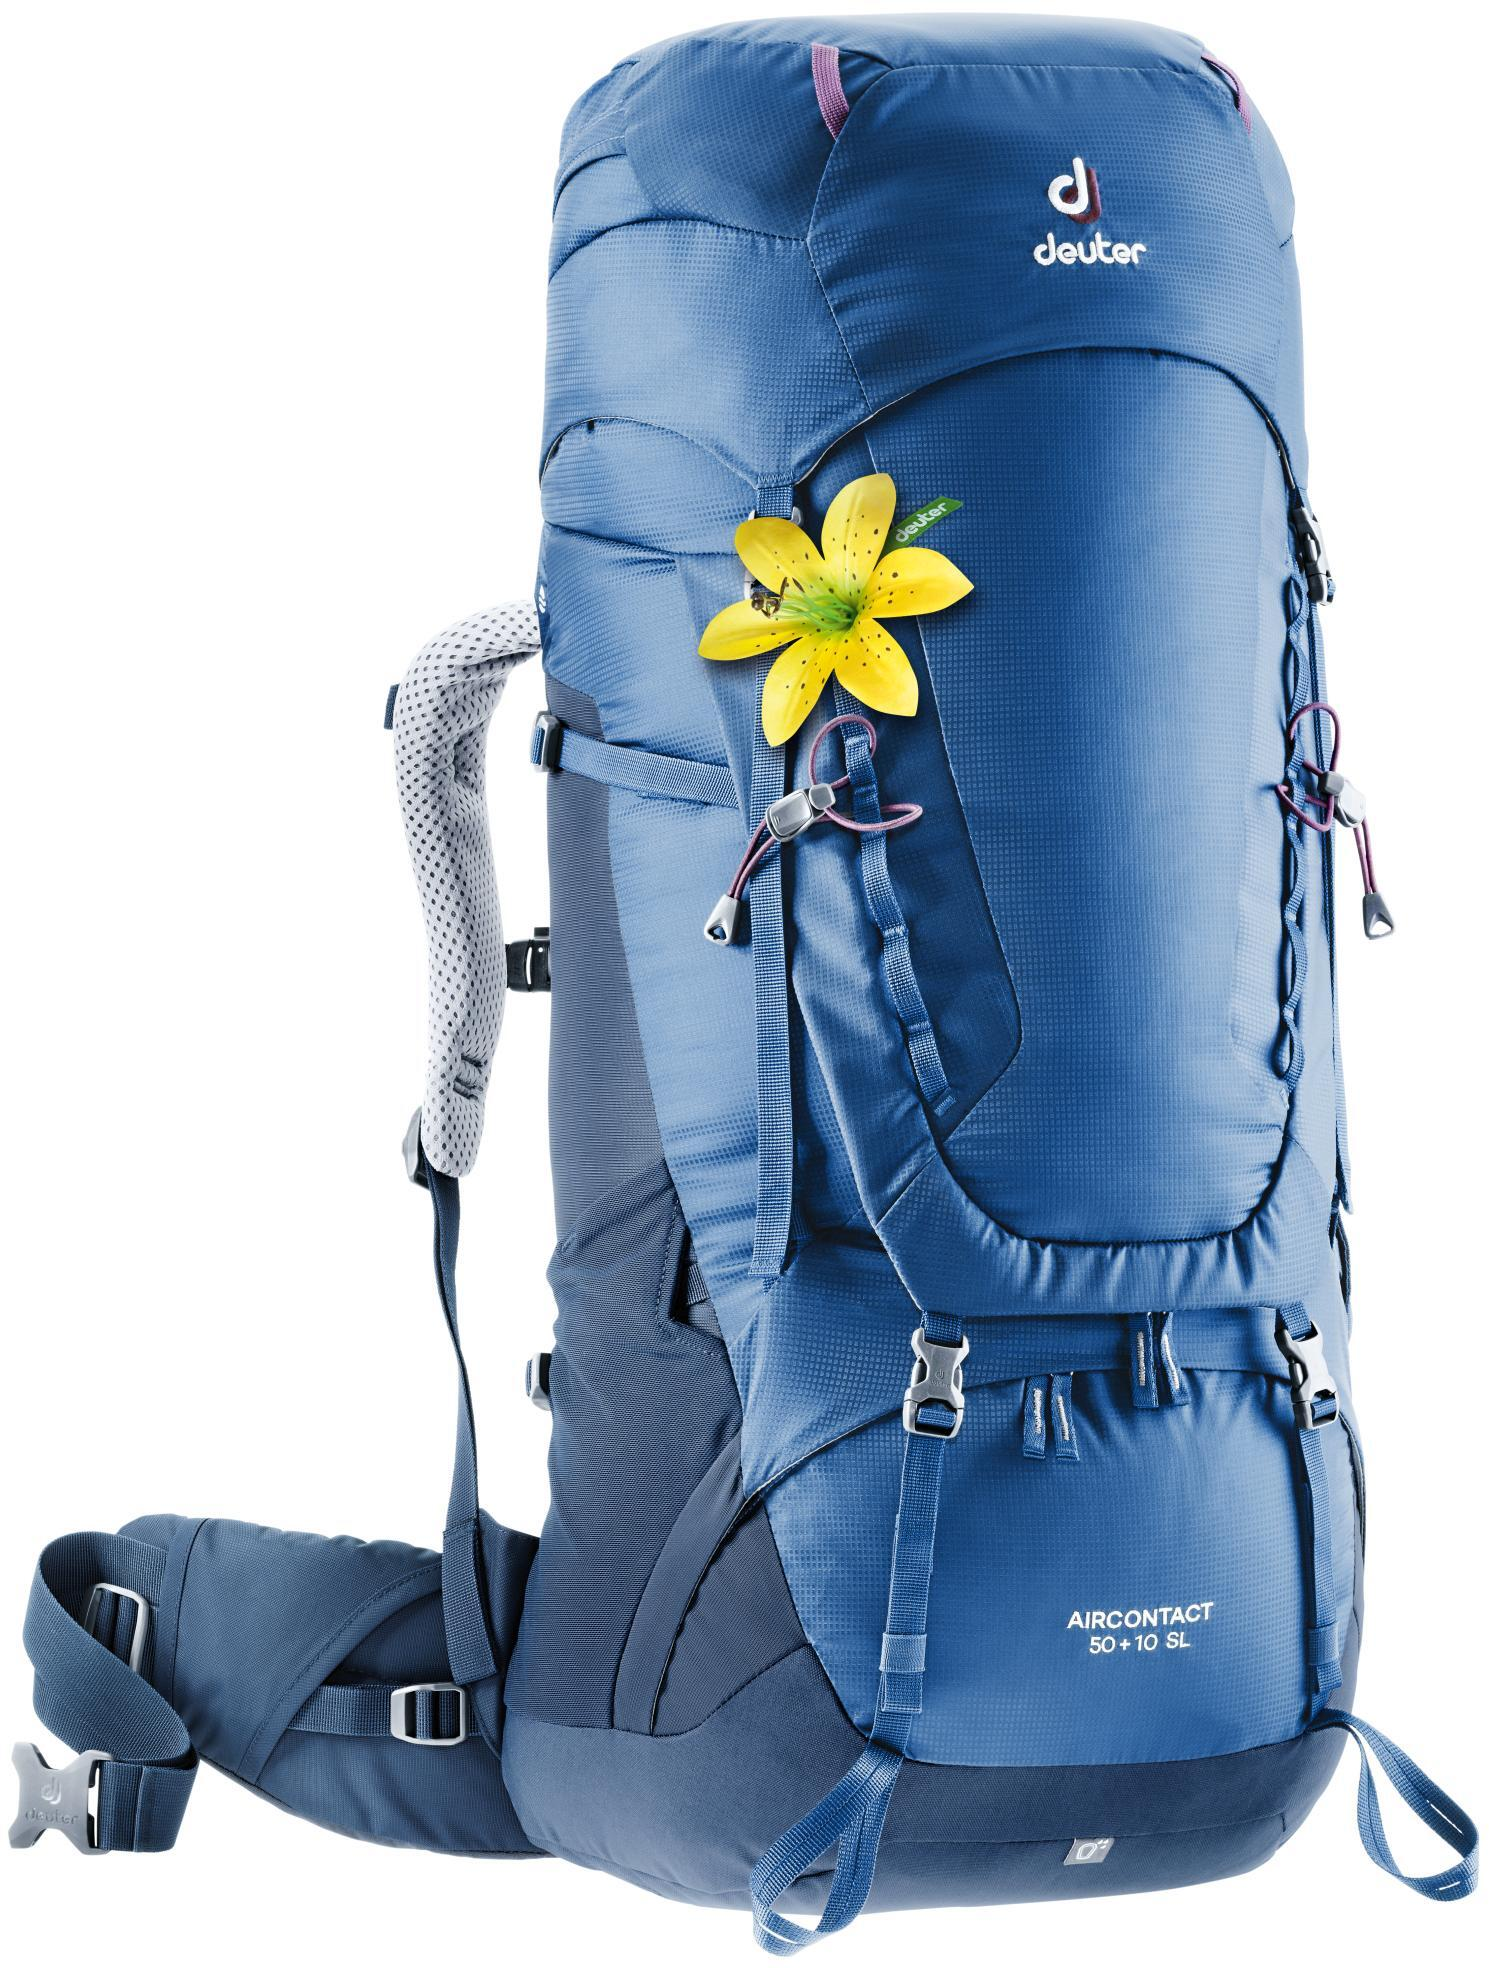 Рюкзак Deuter Aircontact 50+10 Sl Steel/midnight